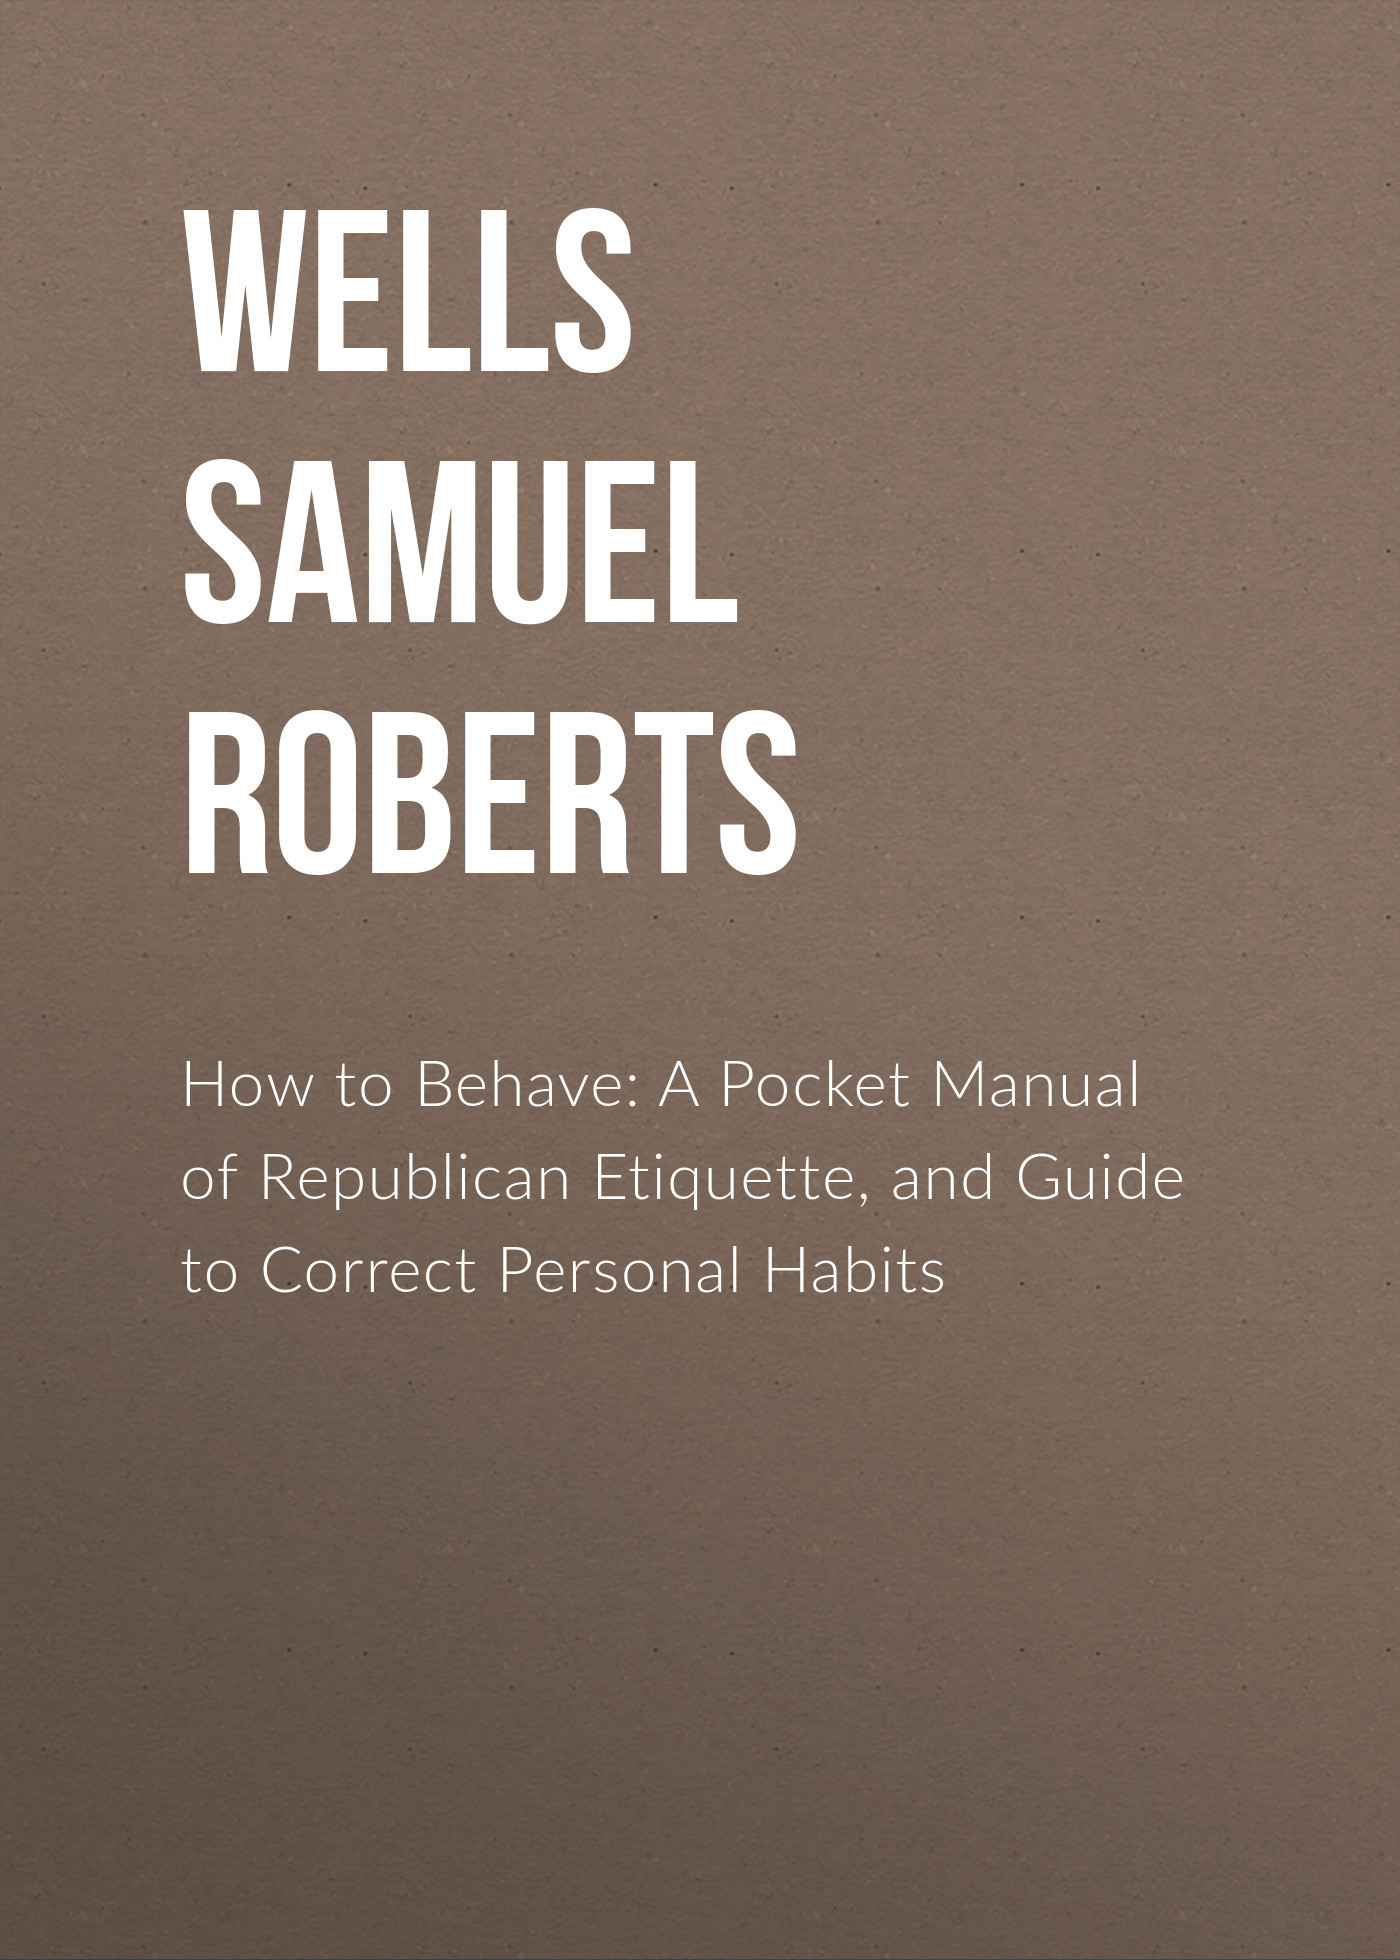 Wells Samuel Roberts How to Behave: A Pocket Manual of Republican Etiquette, and Guide to Correct Personal Habits творог милава зерненый черешня ваниль 5